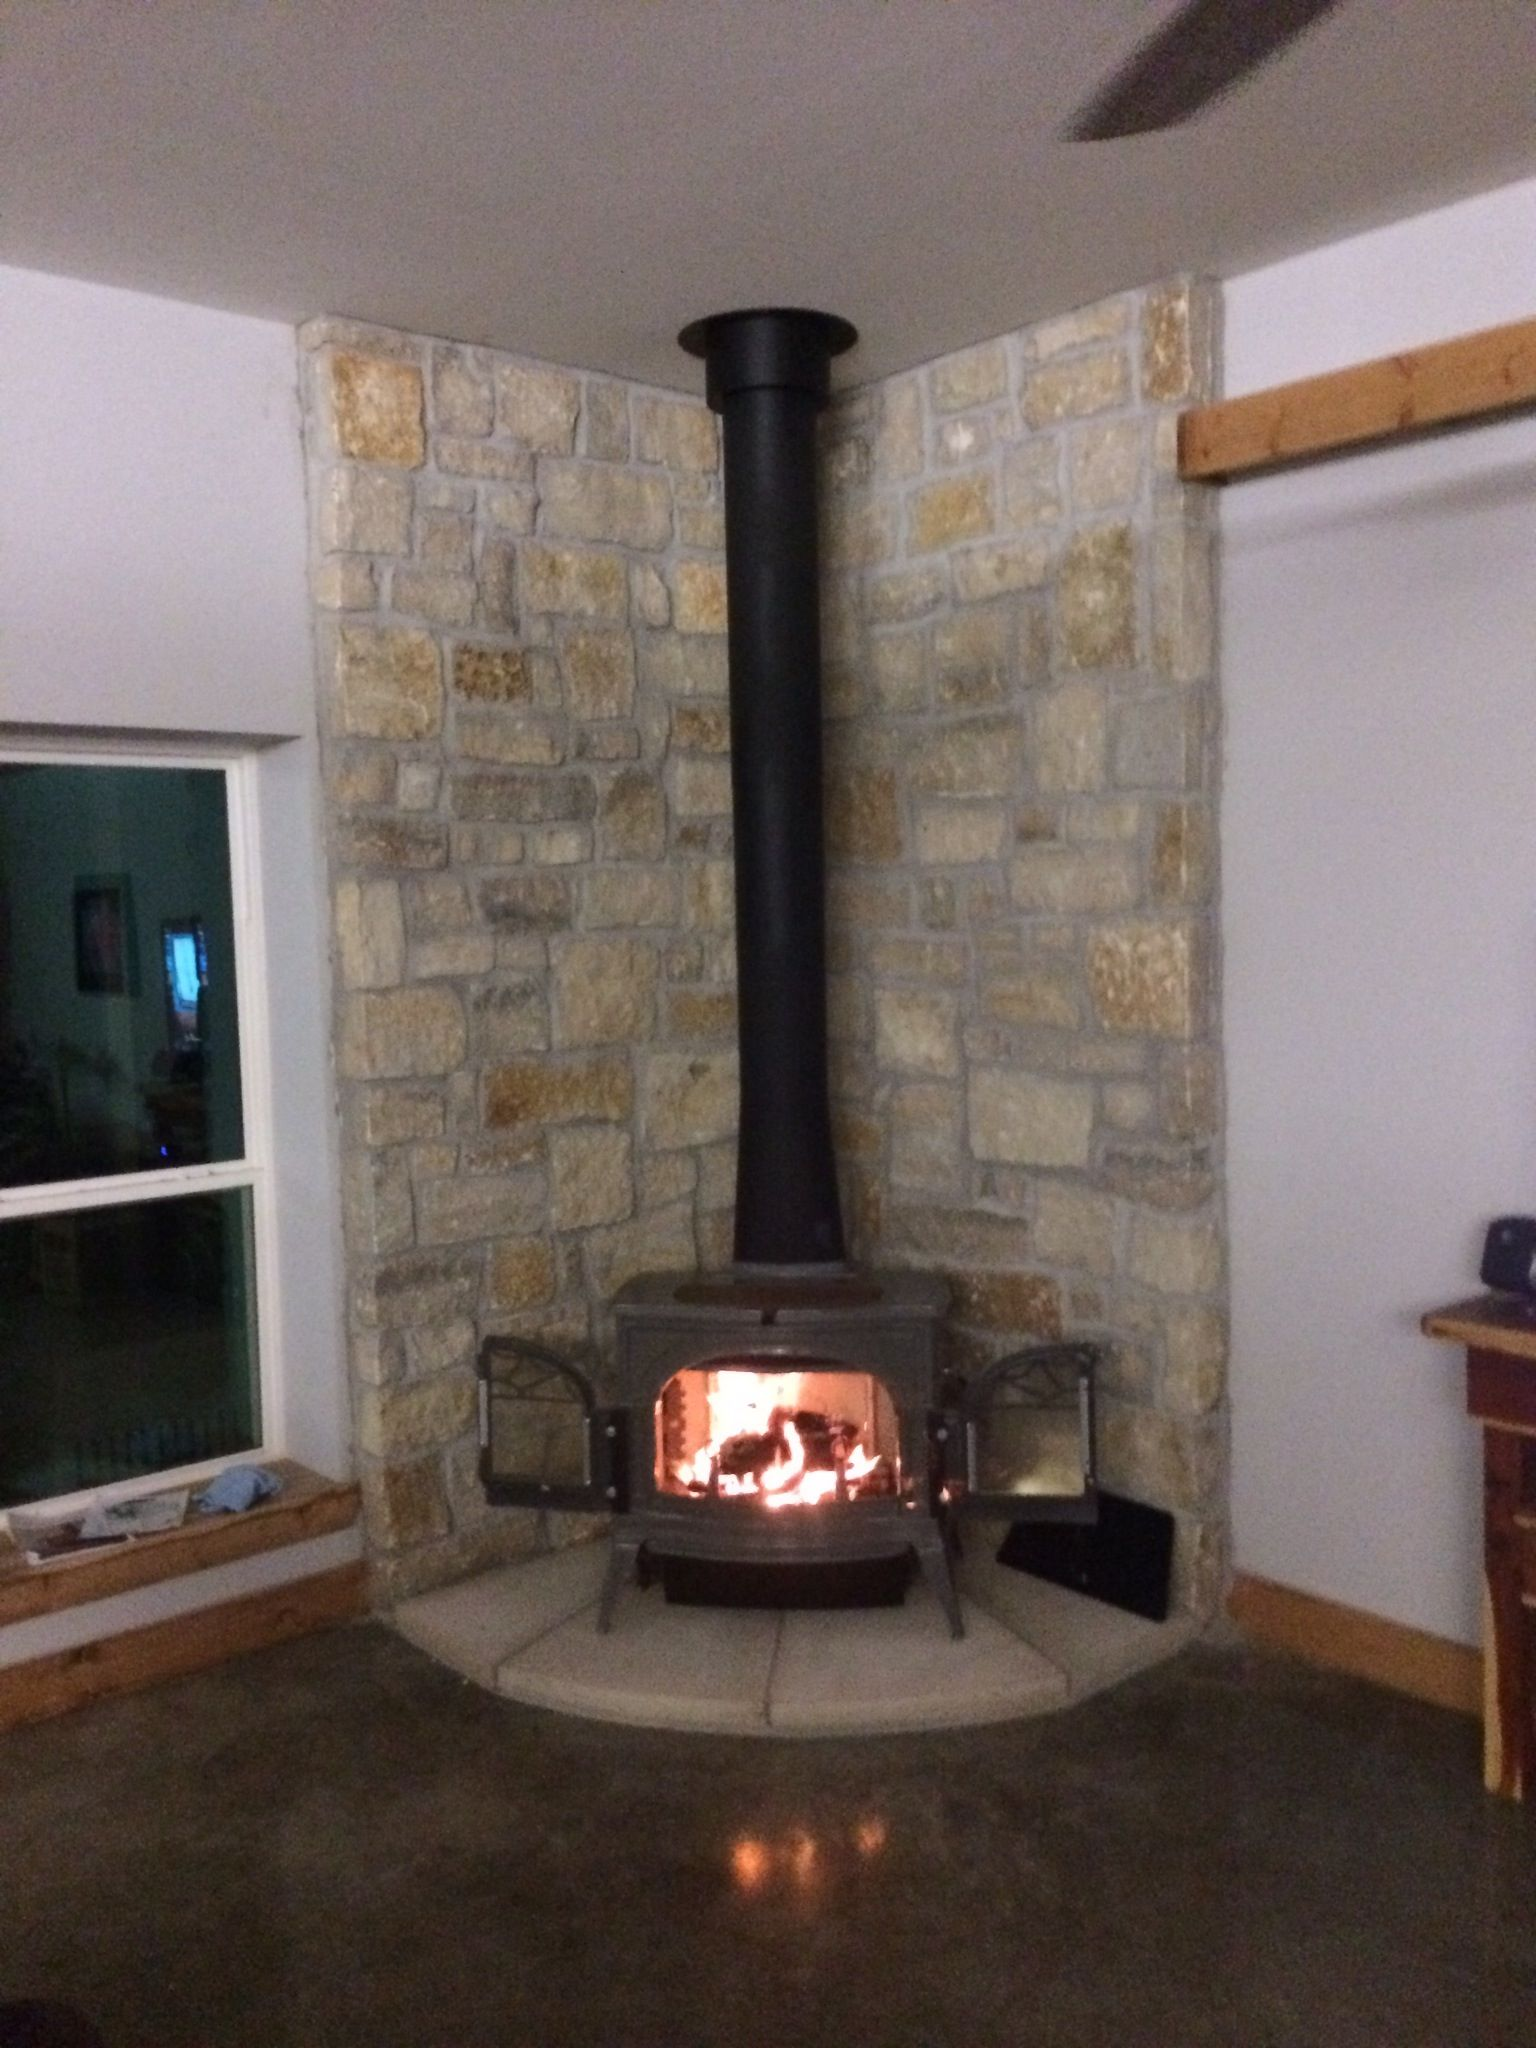 Fire Stove In Living Room Corner Corner Wood Stove Freestanding Fireplace Wood Stove Fireplace